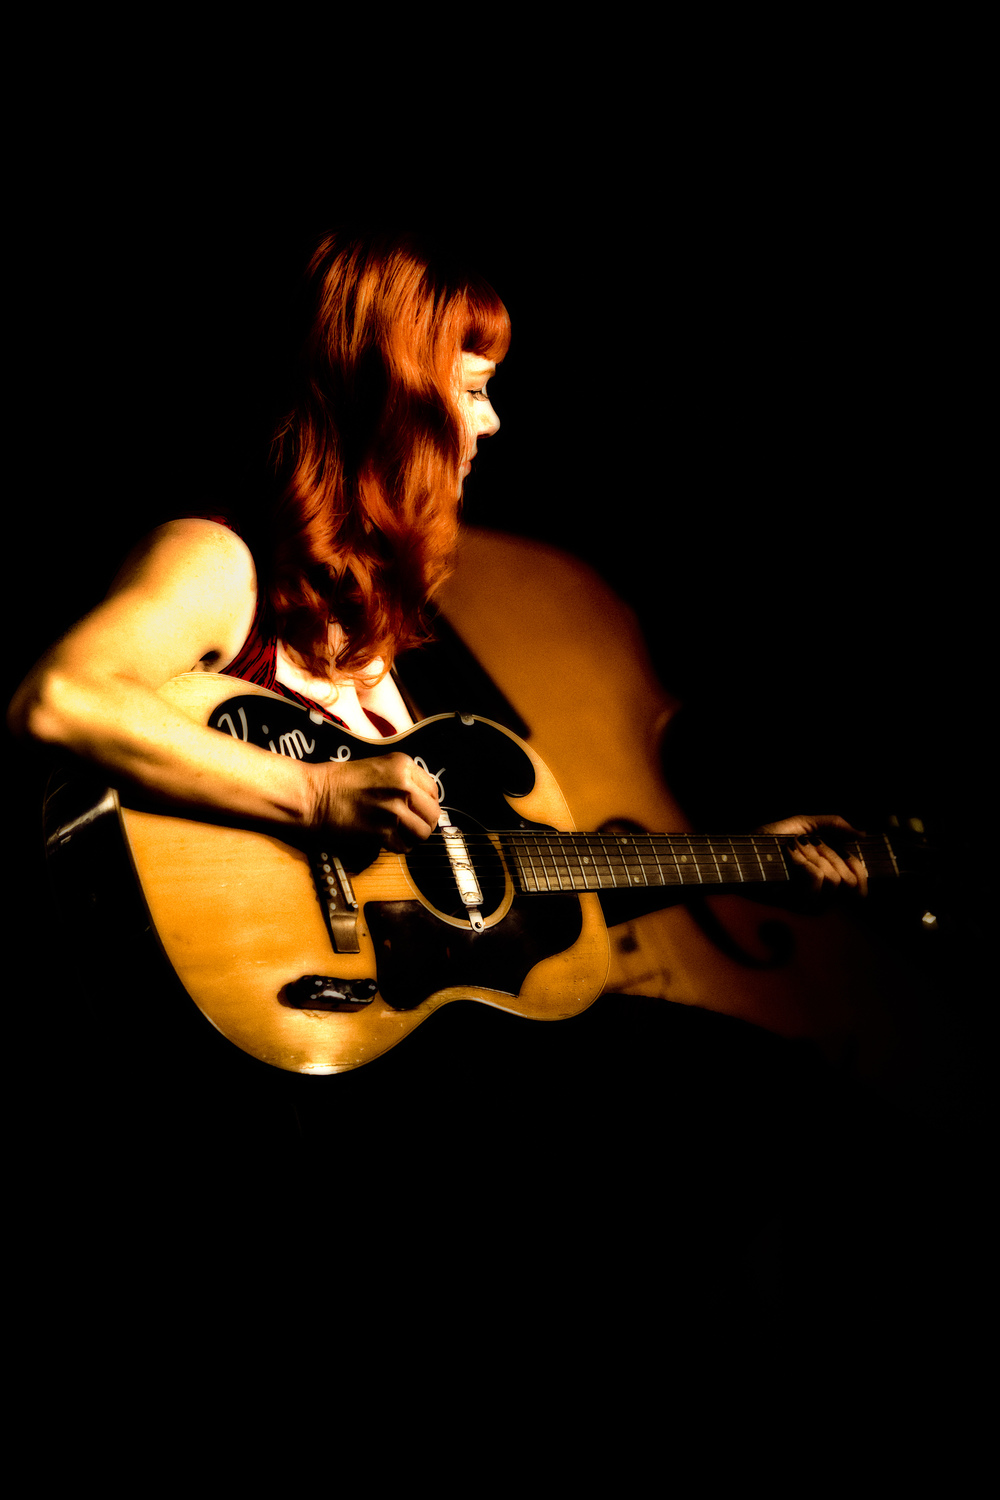 Kim Lenz performing with her Jaguars